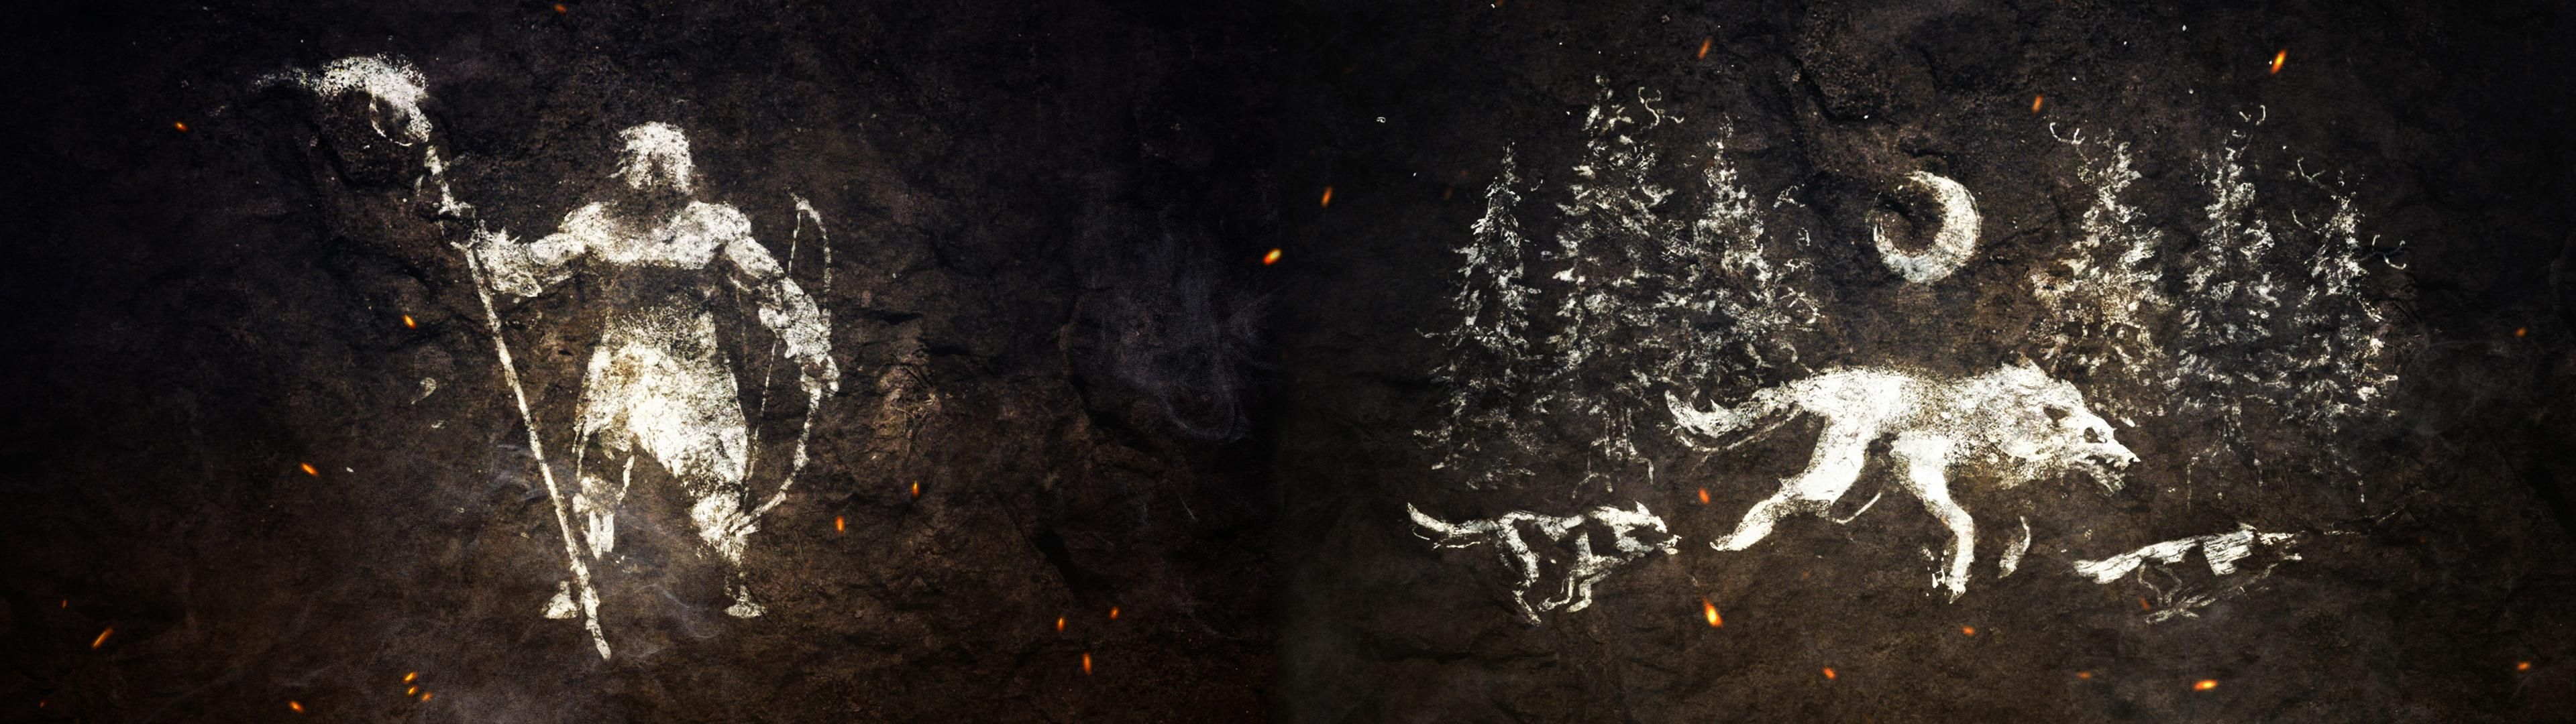 Made a FarCry Primal Dual Monitor Wallpaper [3840x1080]